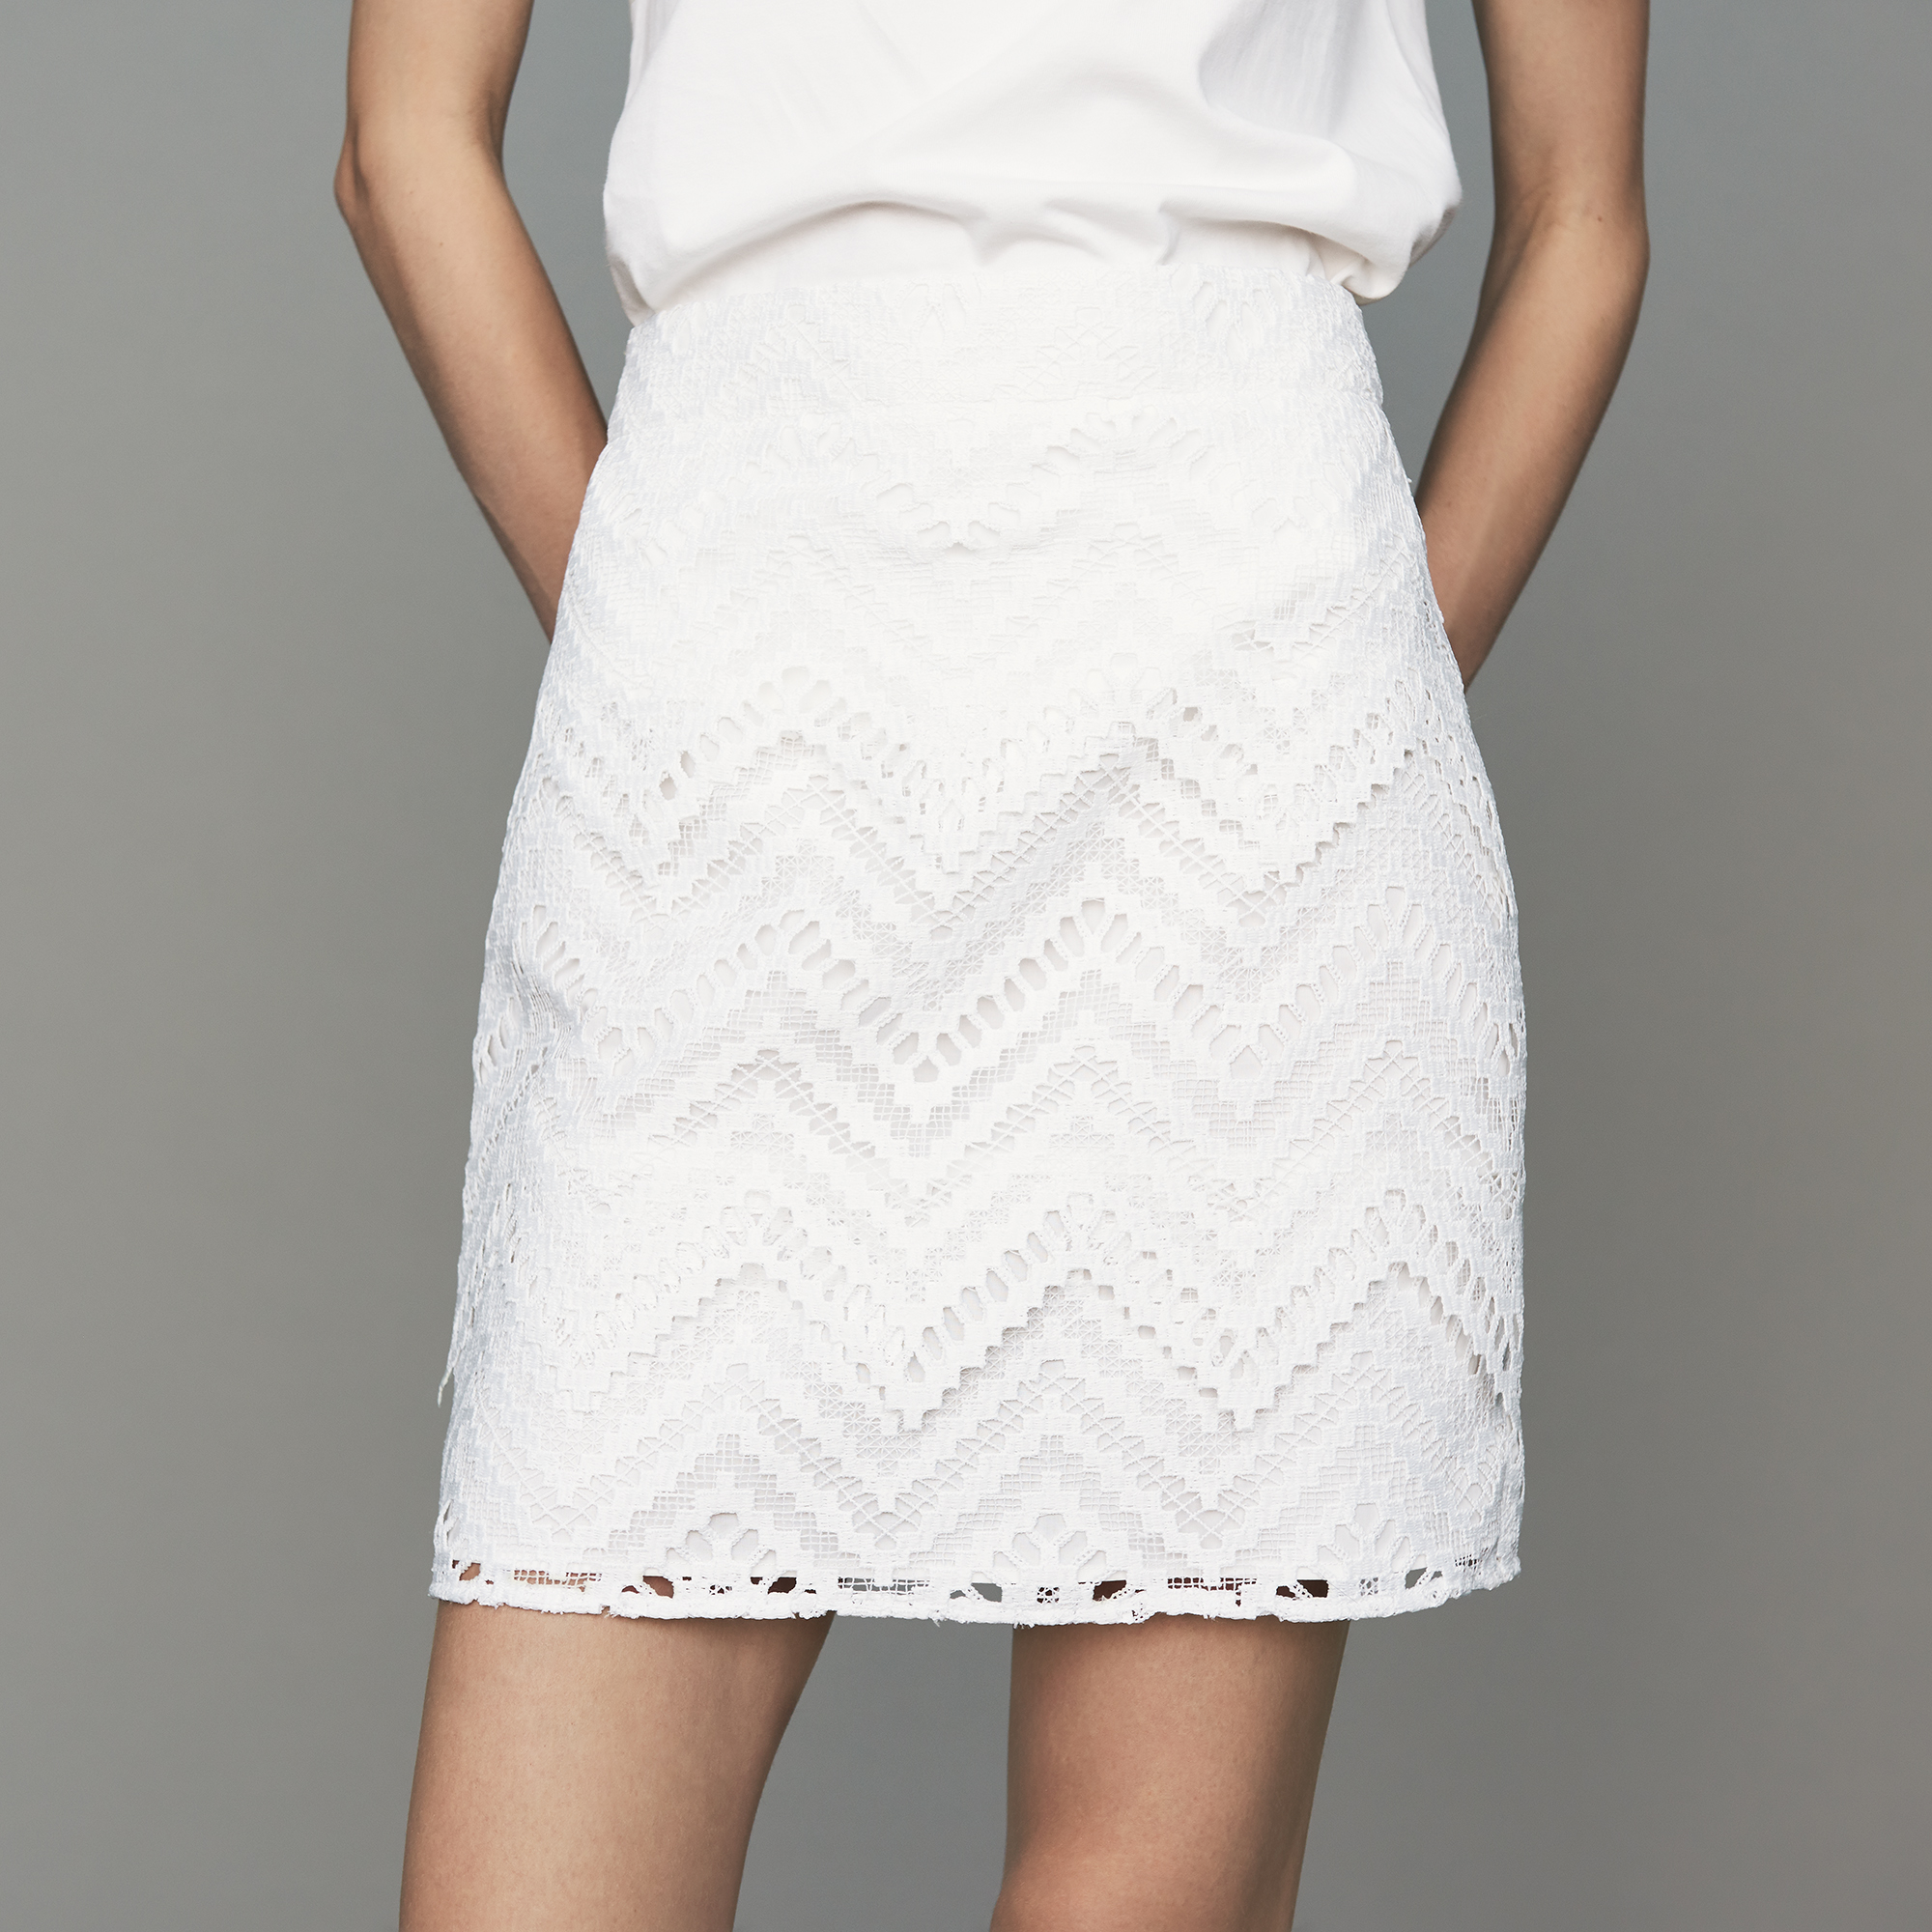 White short skirt with lace detailing - White